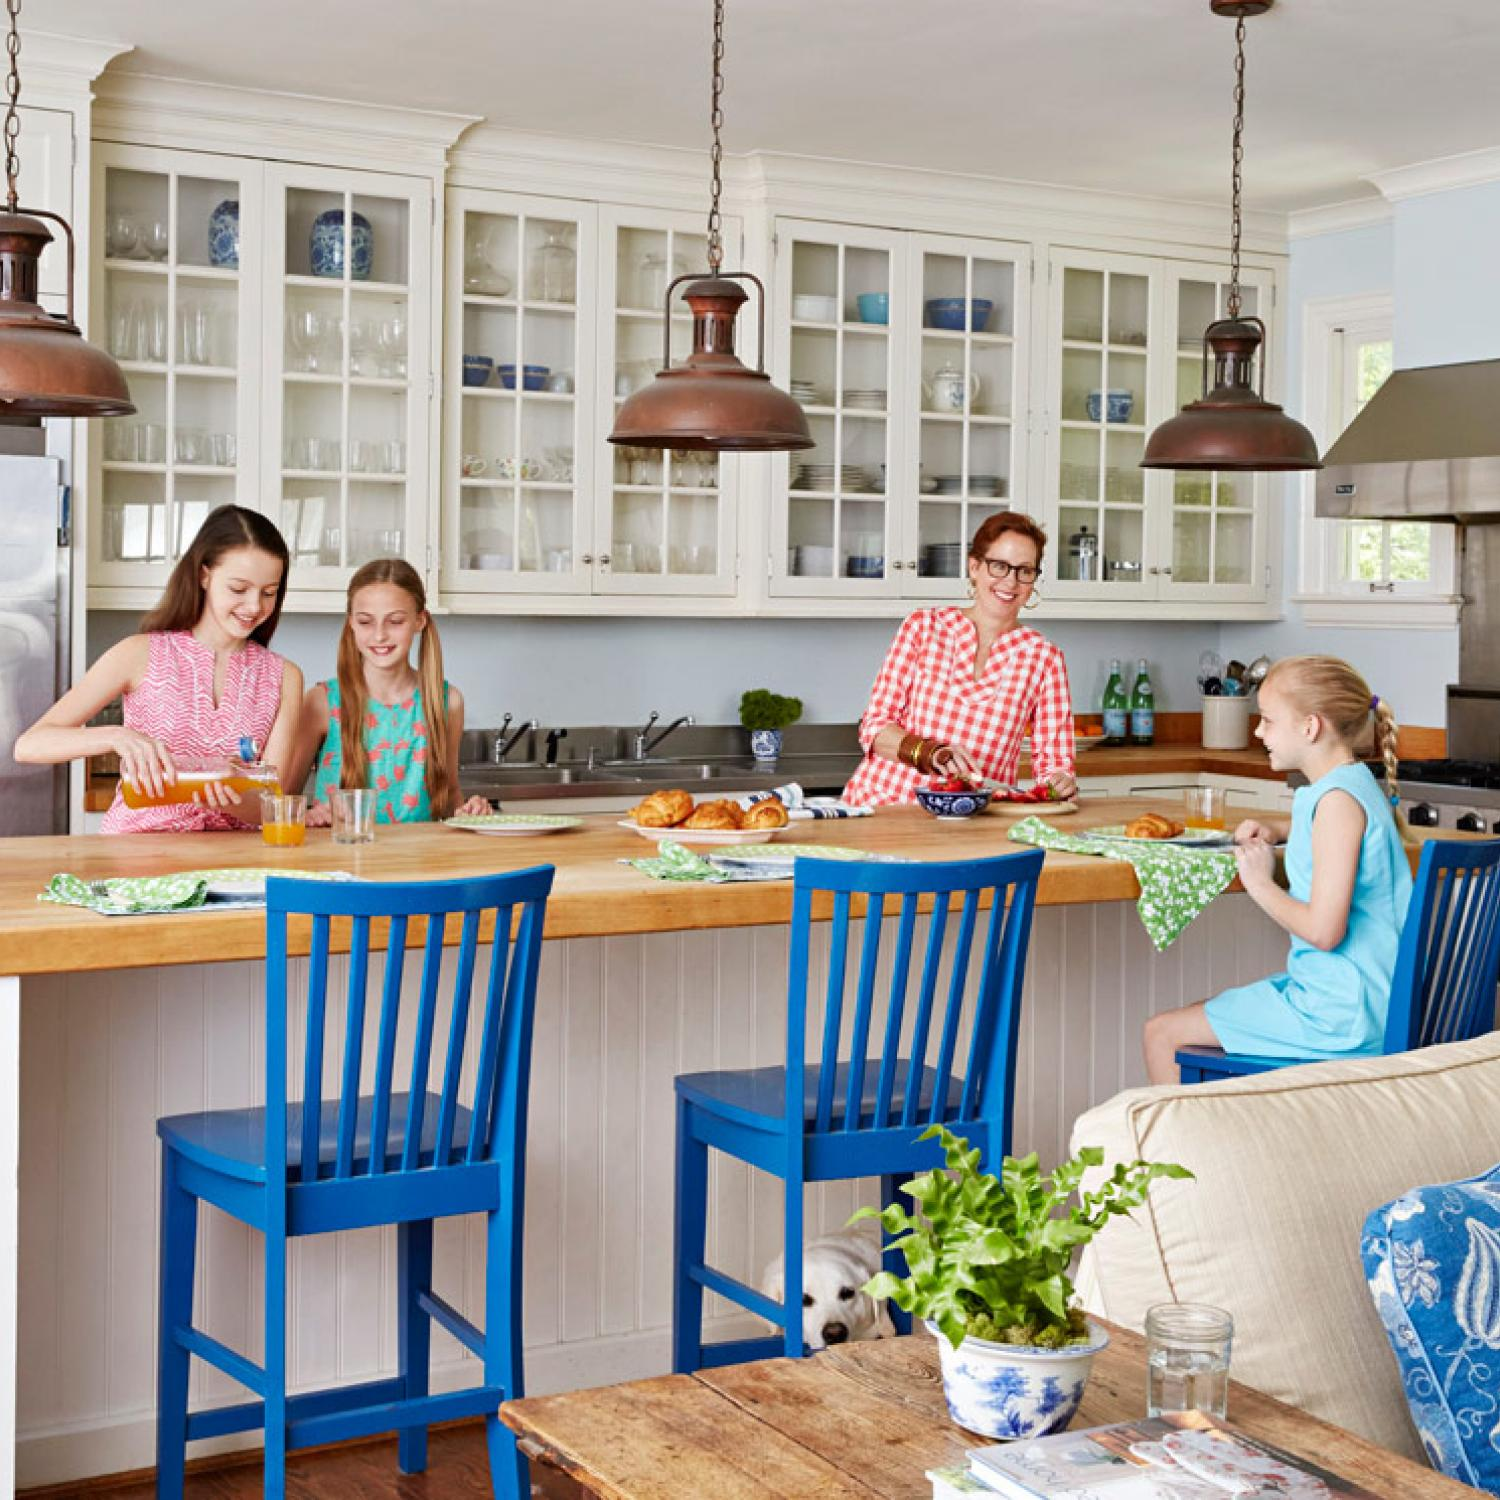 Home And Kitchen: Family-Friendly Kitchens